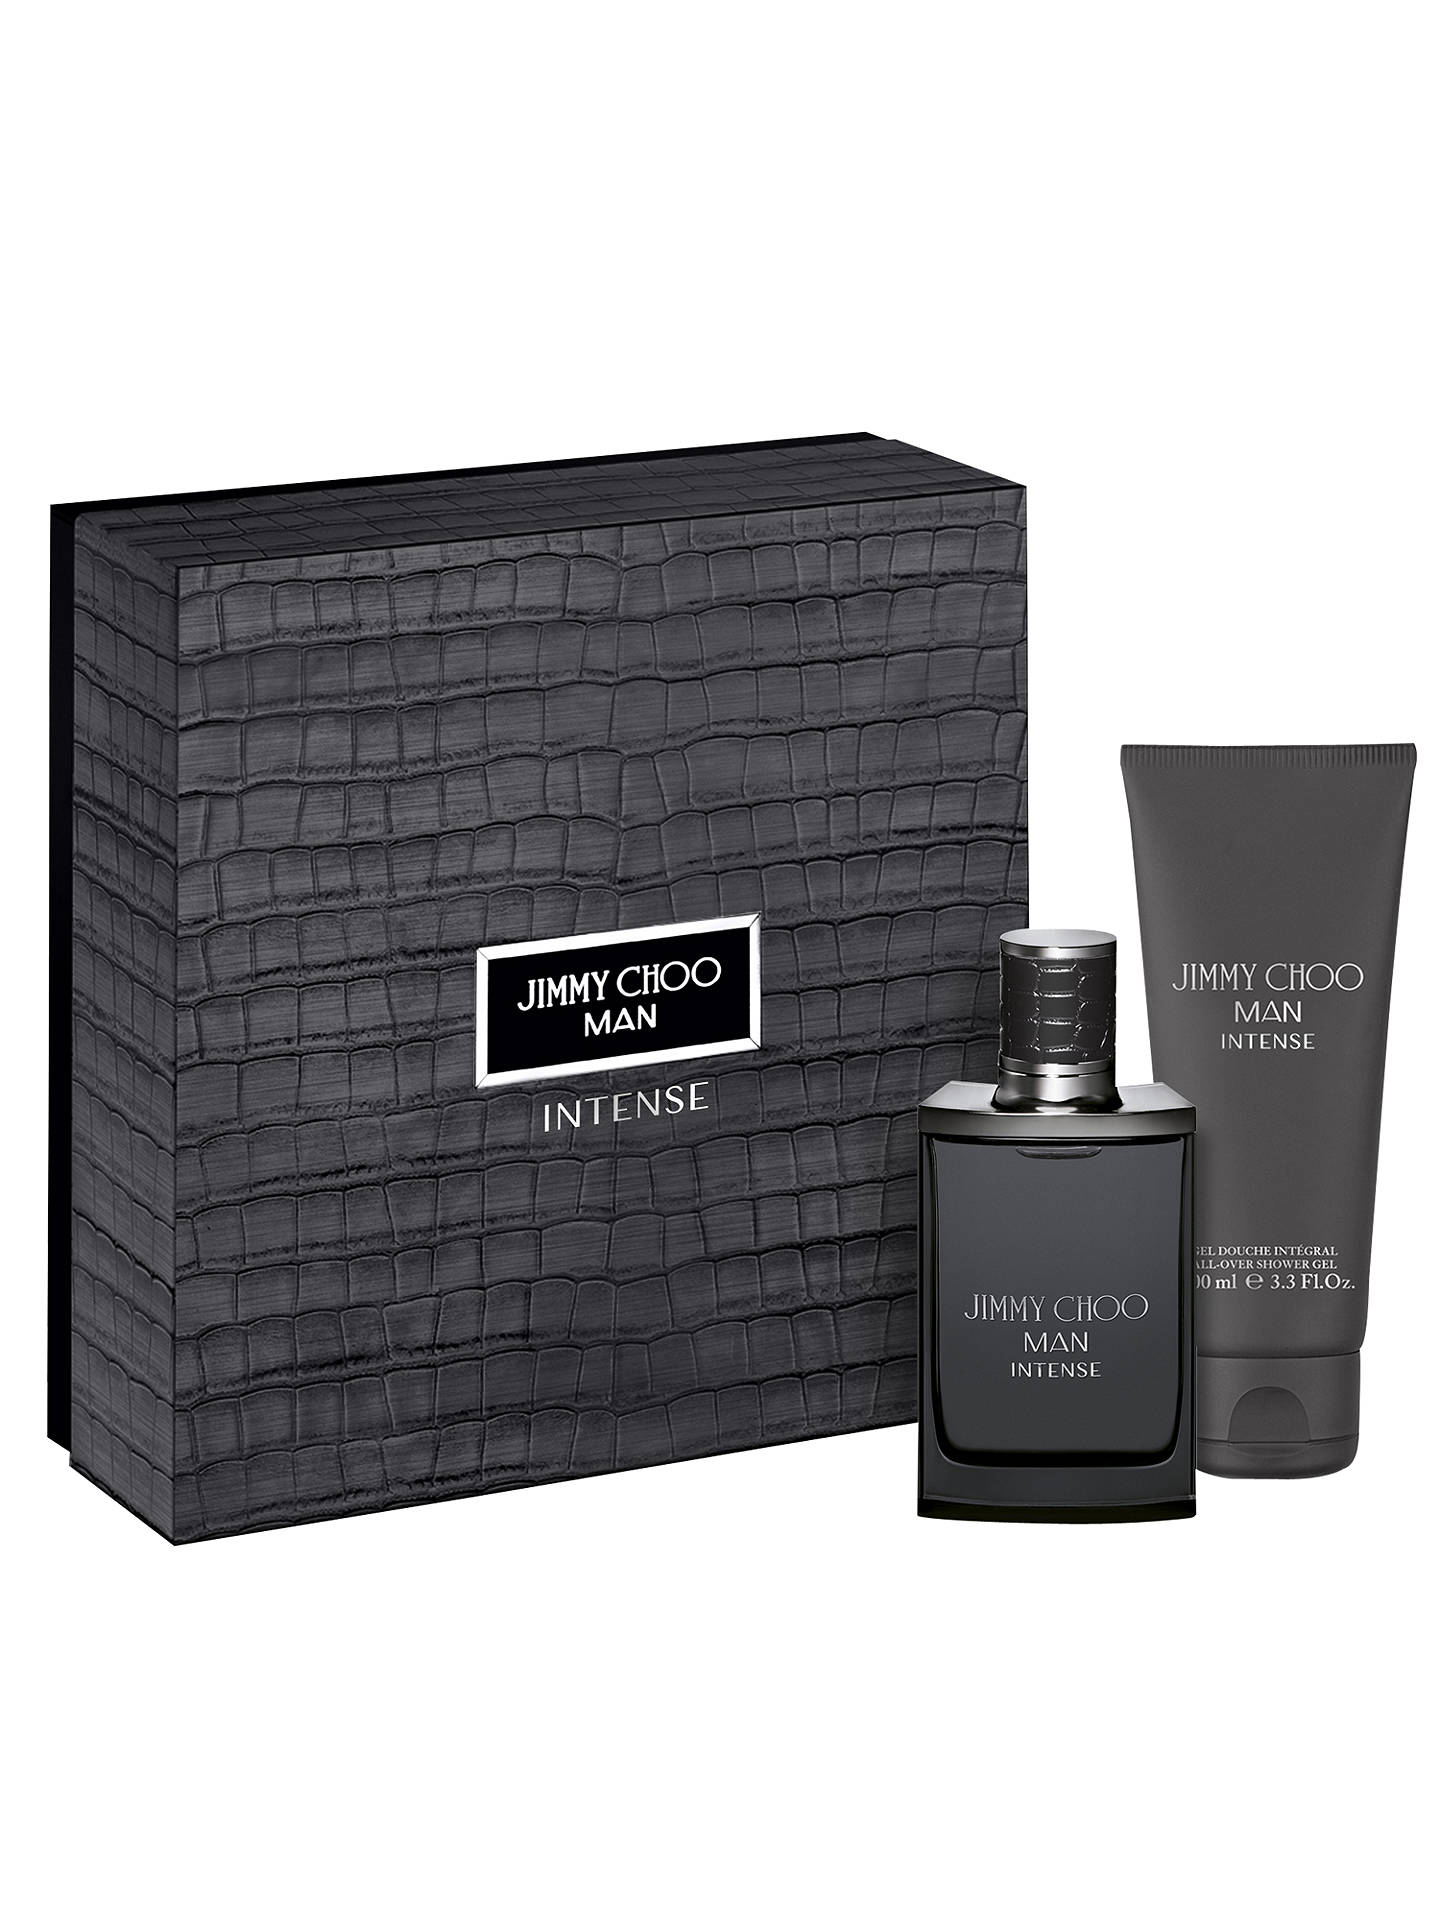 58c0bb7cd4a7 Buy Jimmy Choo MAN Intense 50ml Eau de Toilette Fragrance Gift Set Online  at johnlewis.